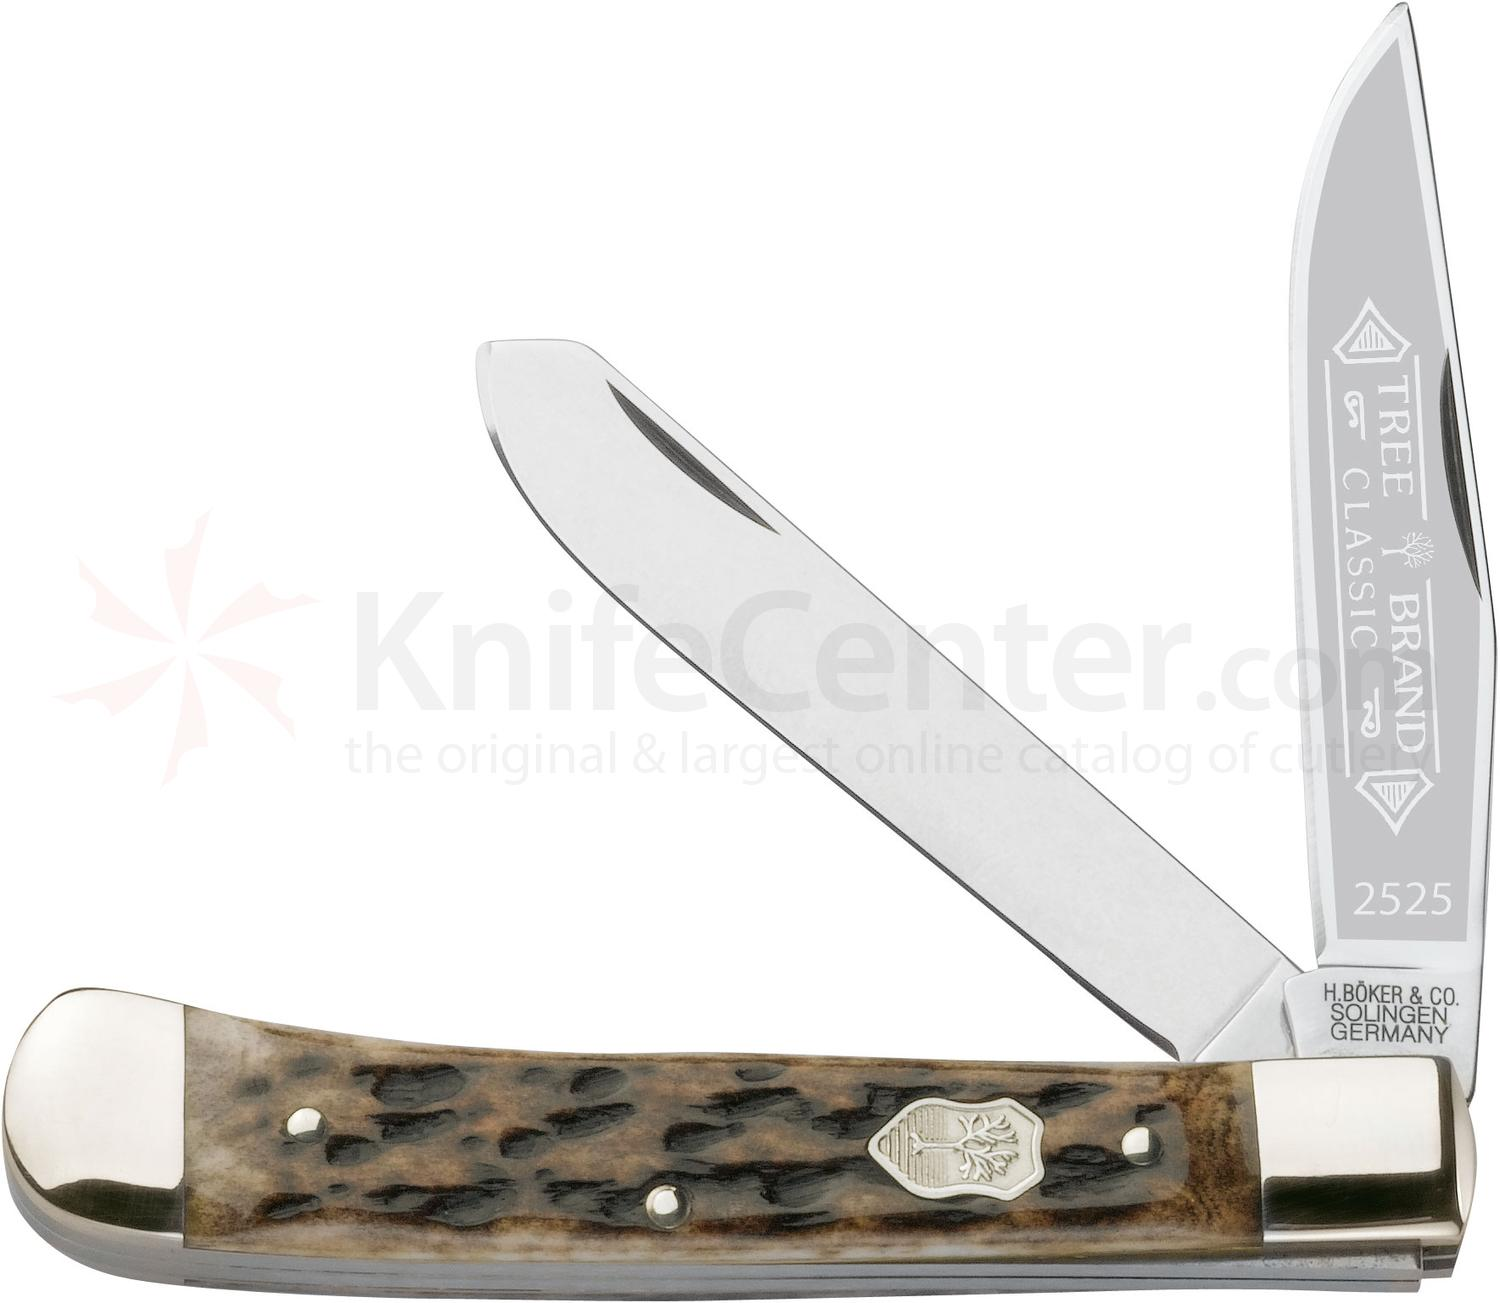 Boker Appaloosa Trapper Pocket Knife 4.25 inch Closed, Bone Handles